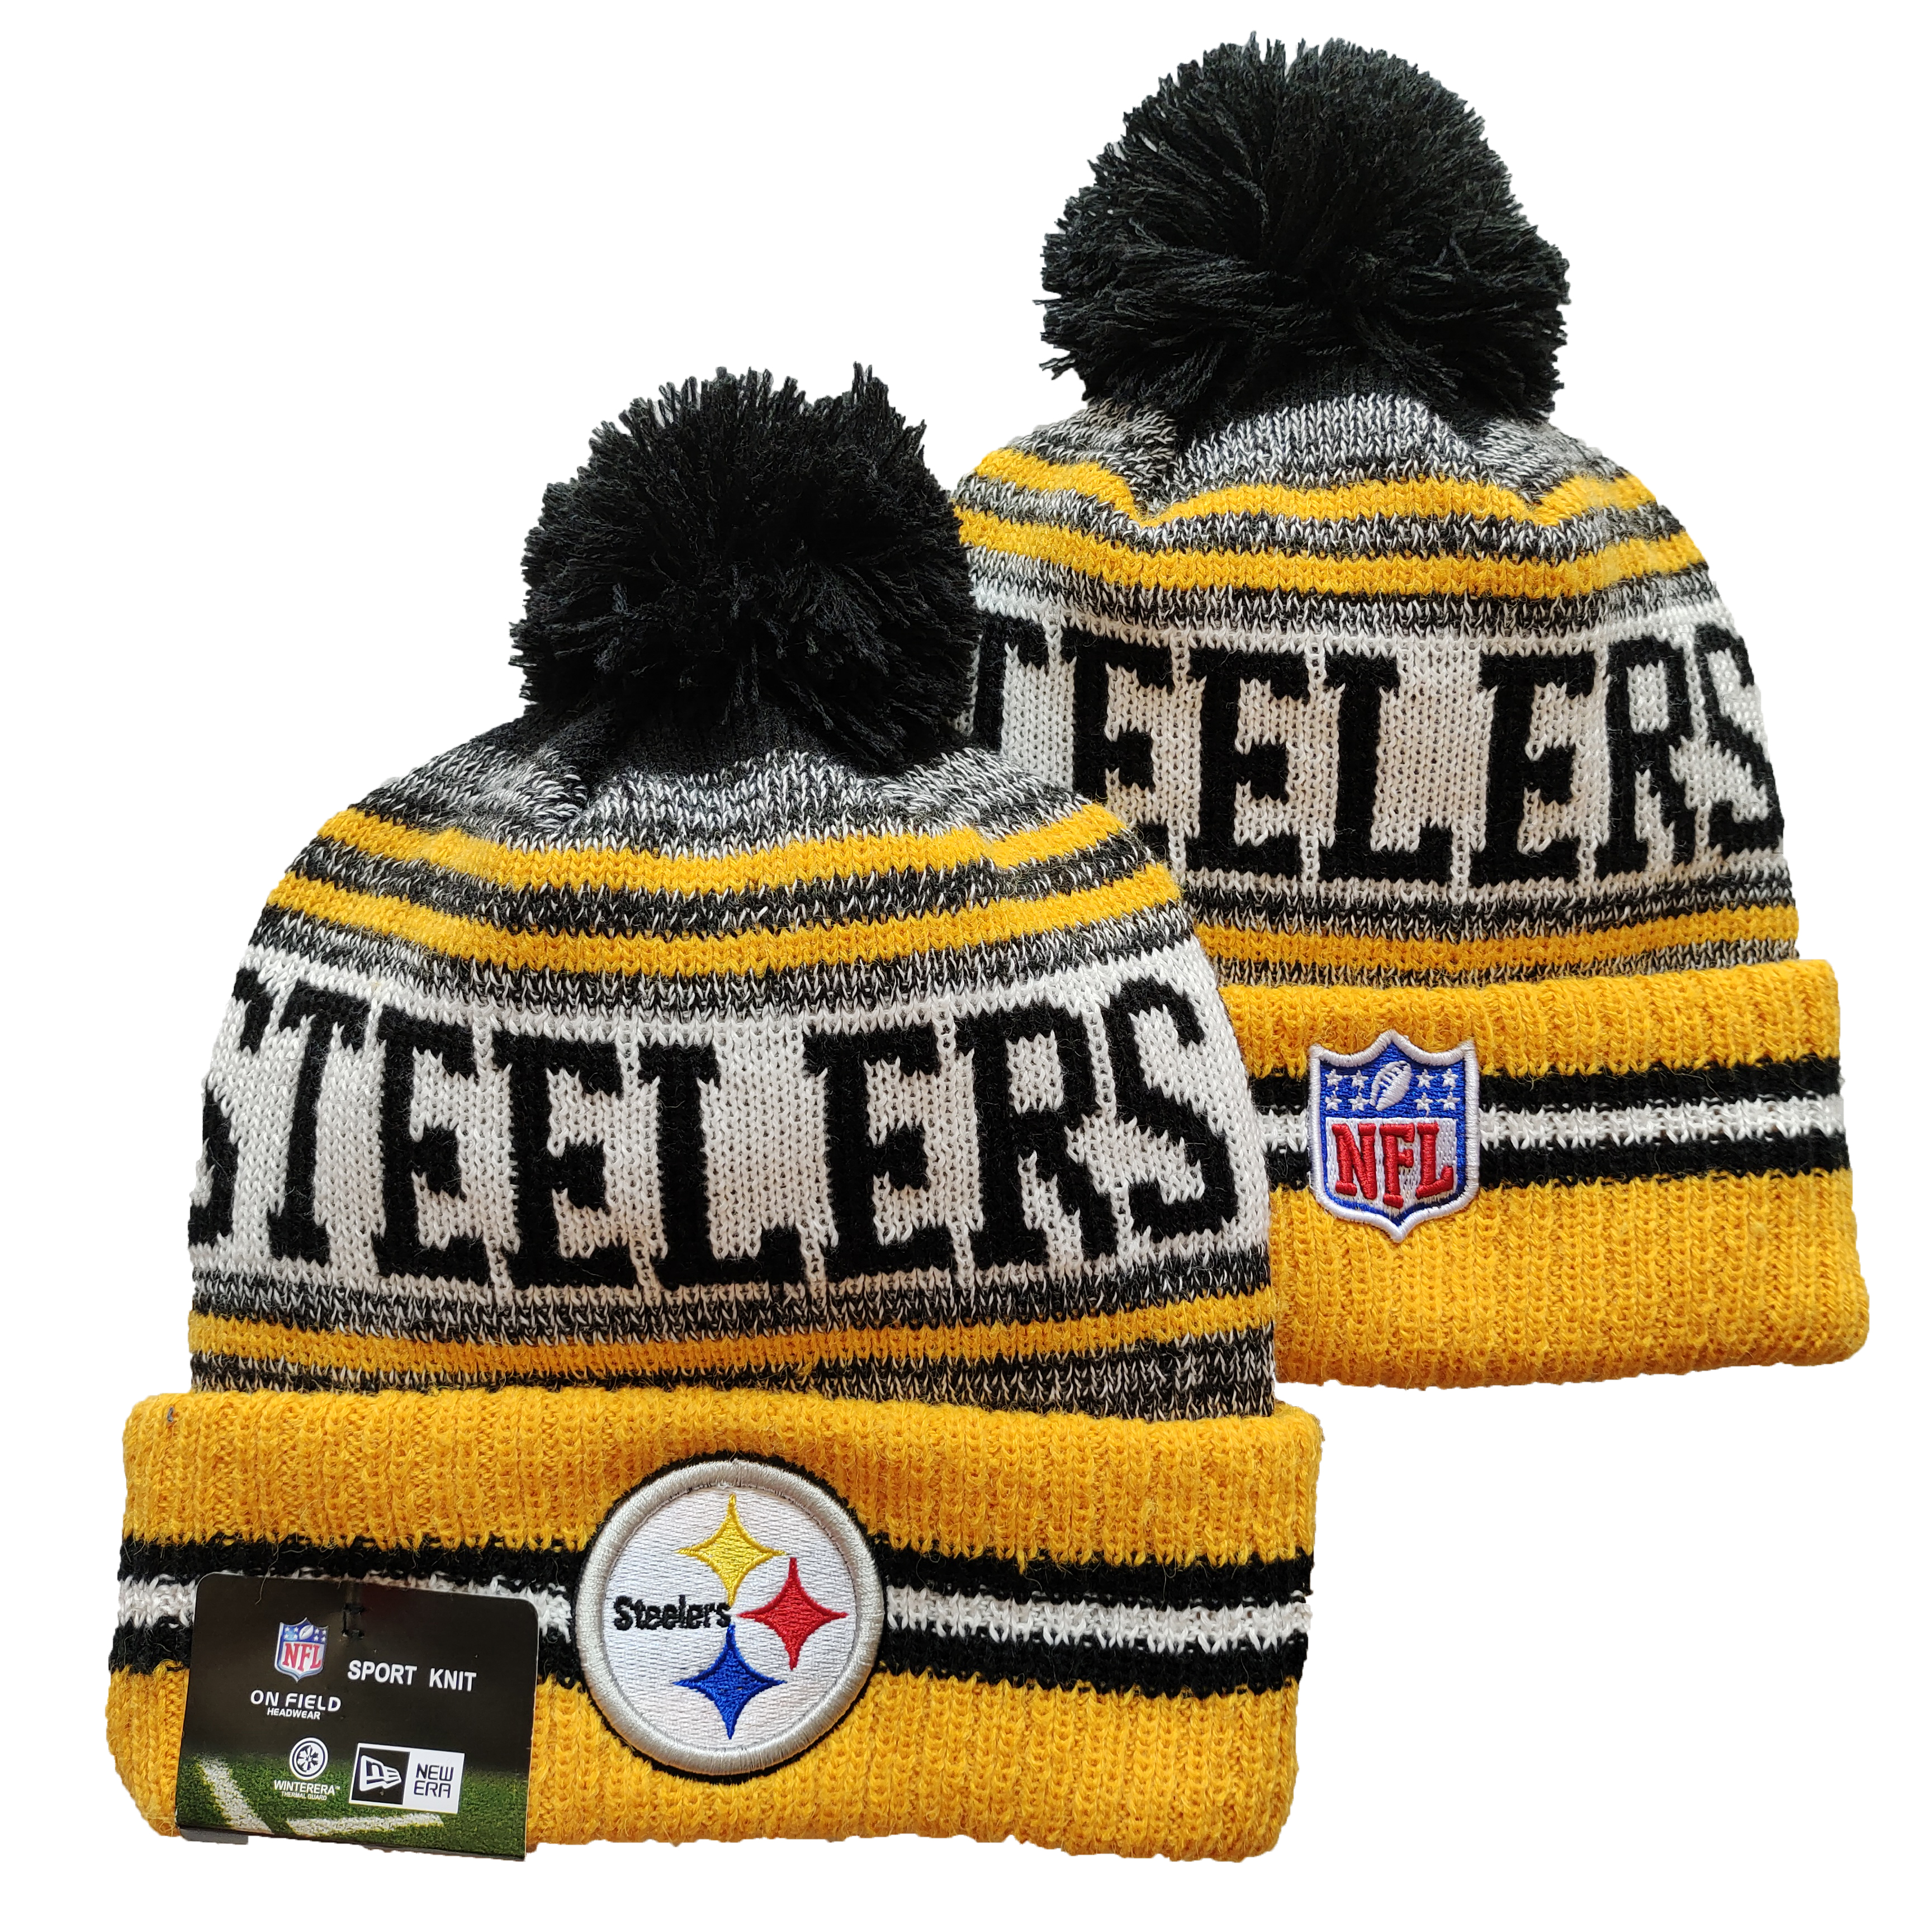 Steelers Team Logo Yellow and Gray Pom Cuffed Knit Hat YD